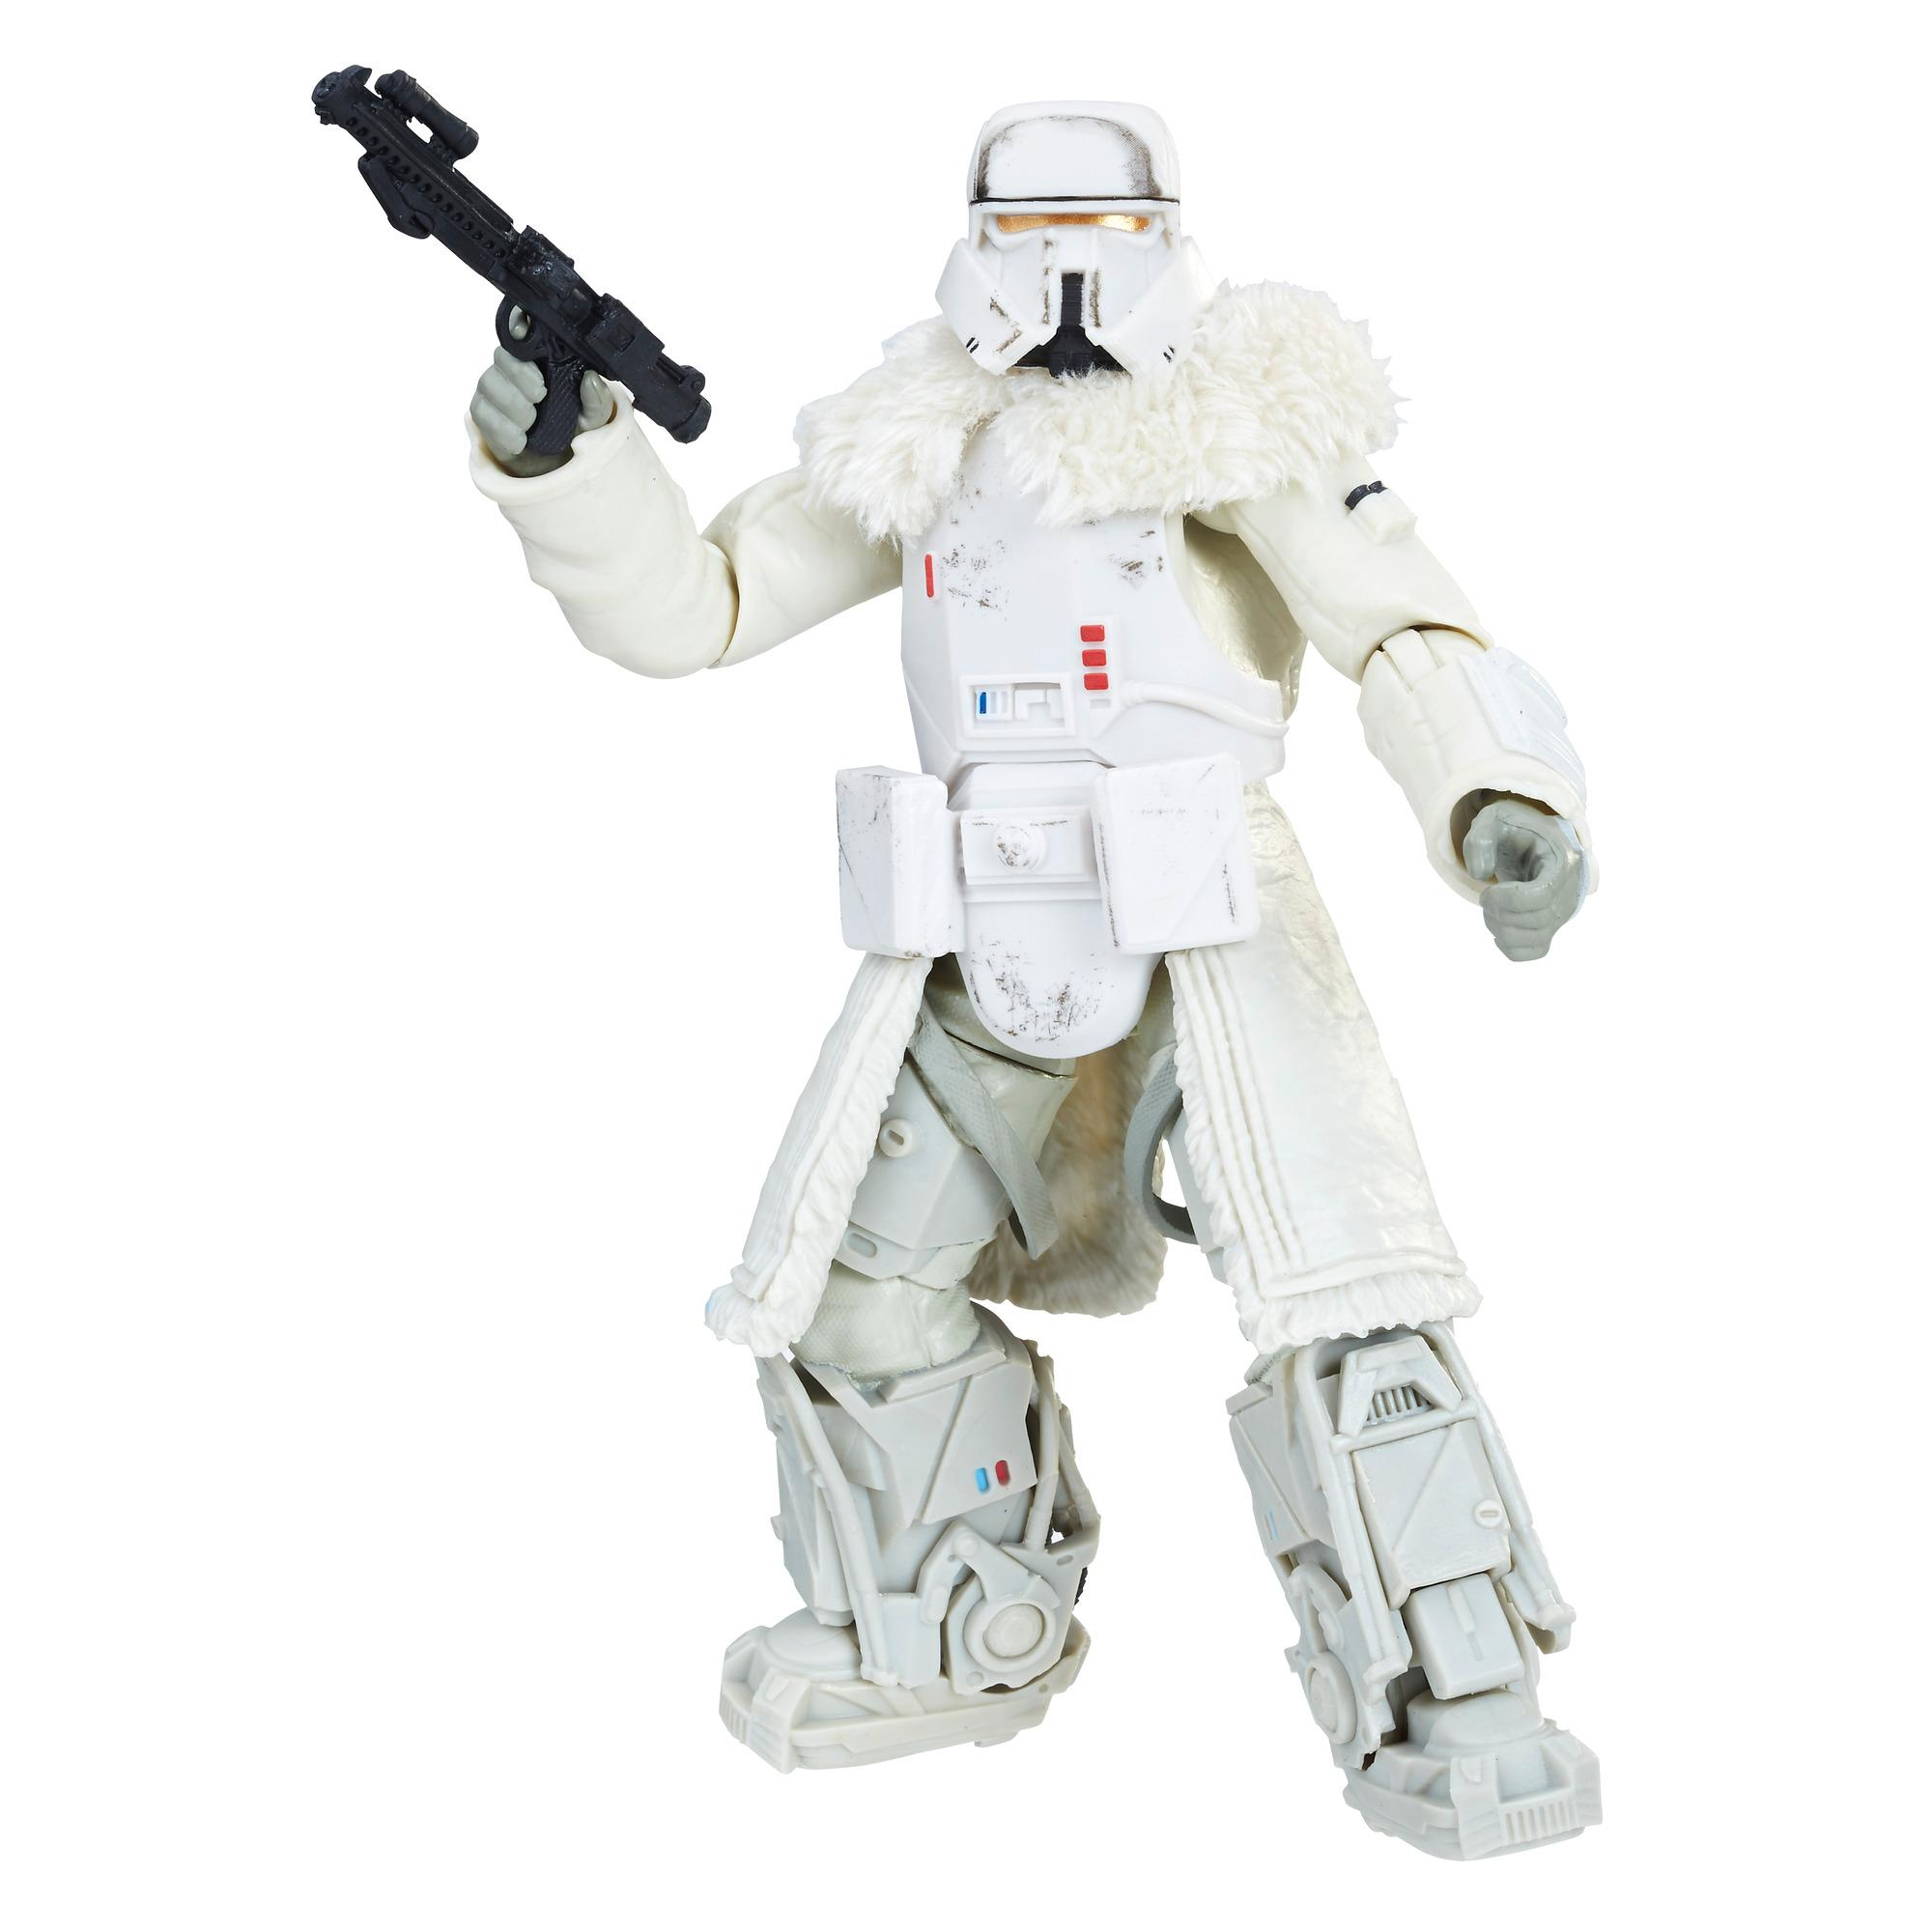 STAR WARS S RANGE TROOPER